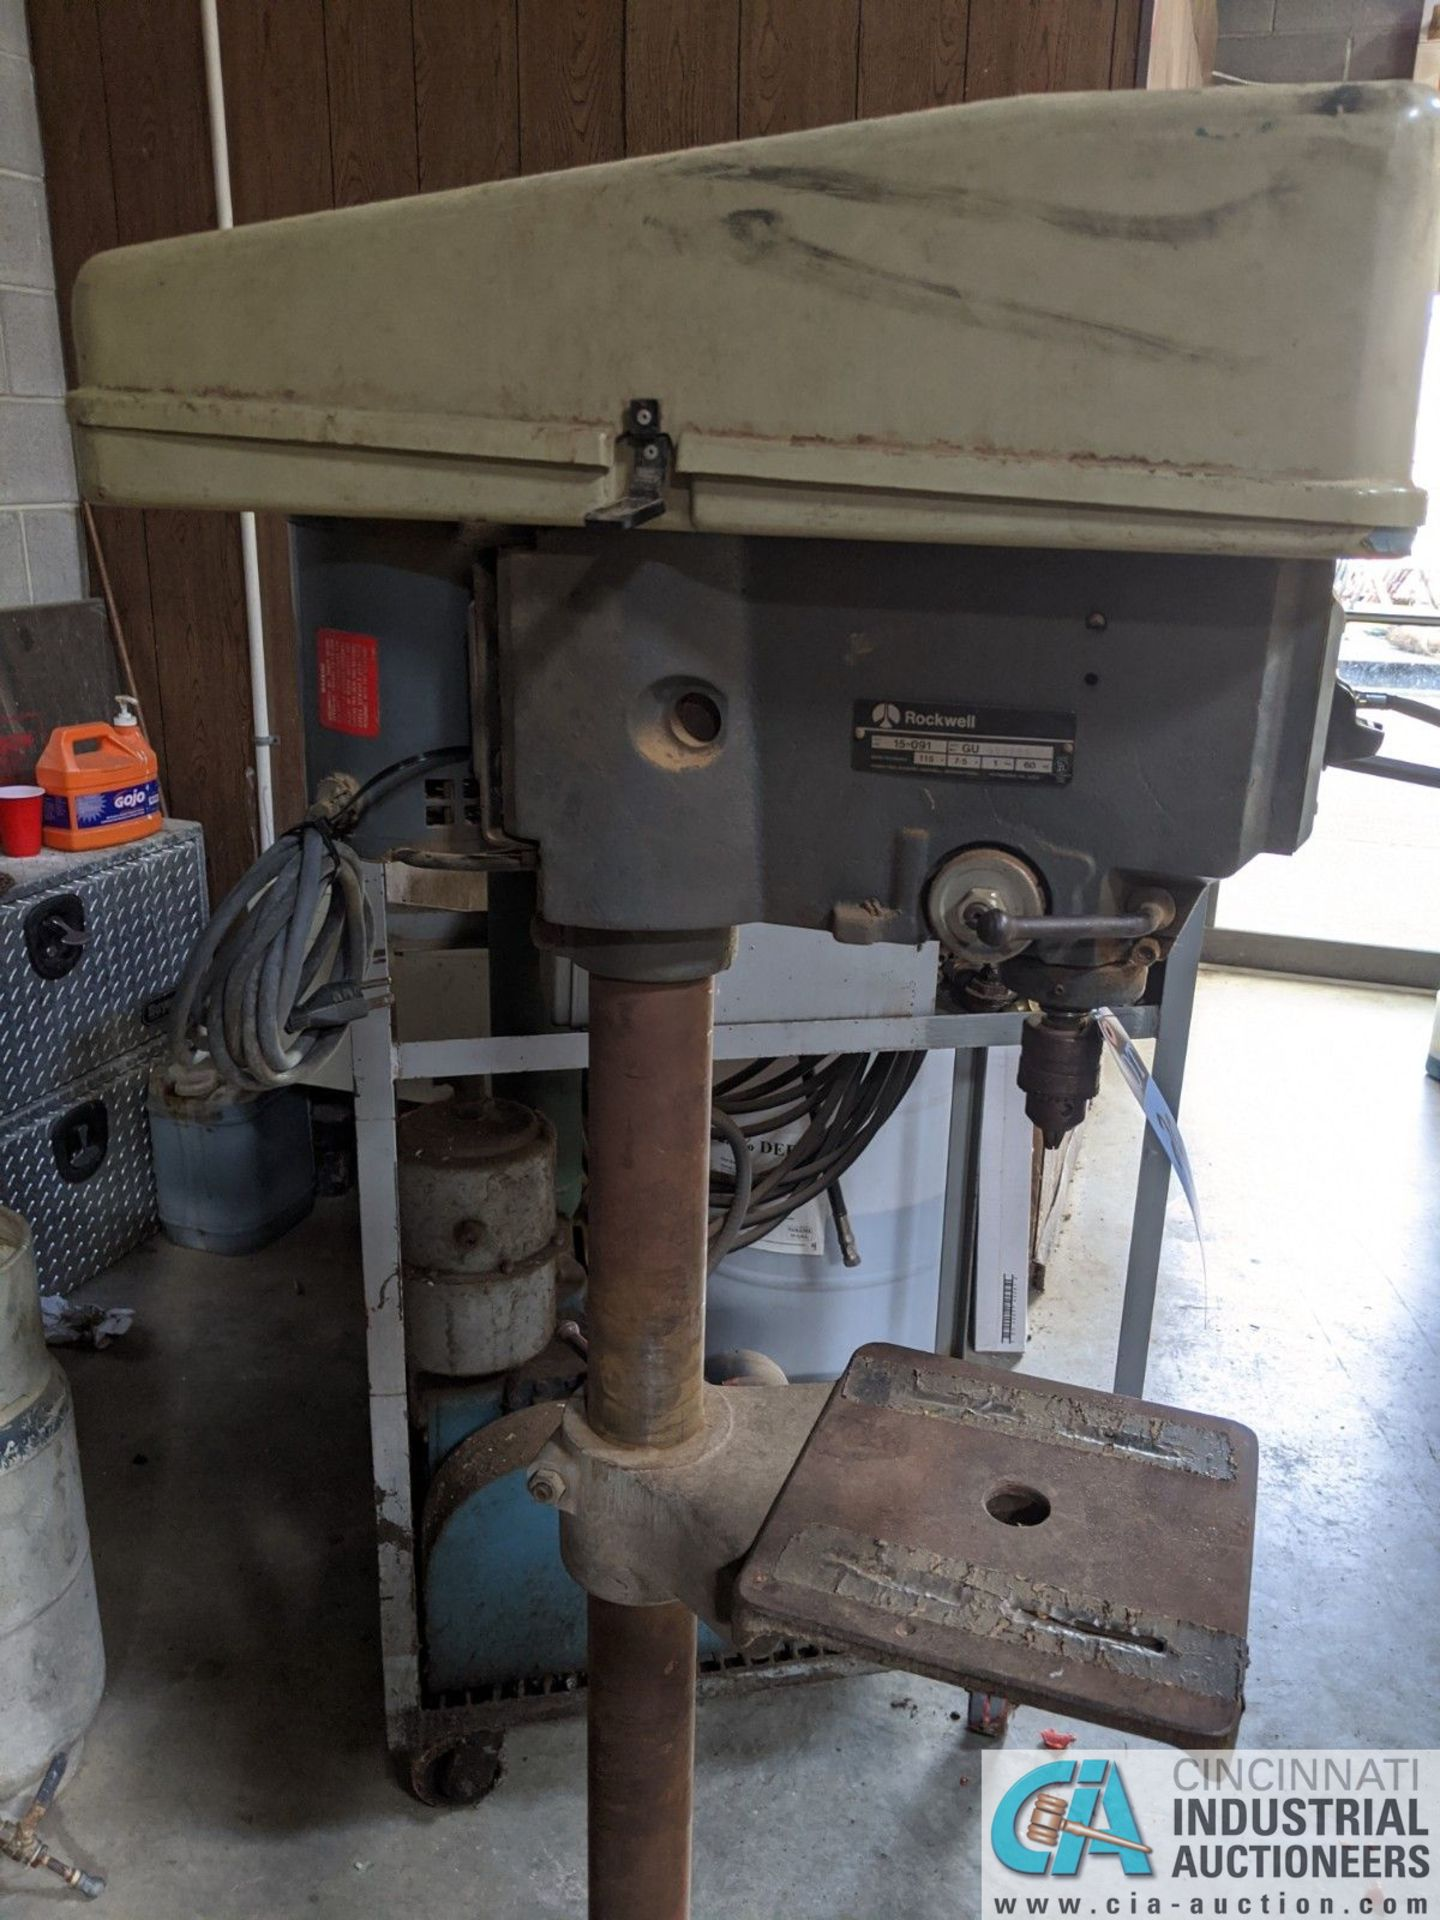 "15"" ROCKWELL MODEL 15-091 SINGLE SPINDLE FLOOR DRILL; 10"" X 10-1/2"" TABLE (8635 East Ave., Mentor, - Image 2 of 4"